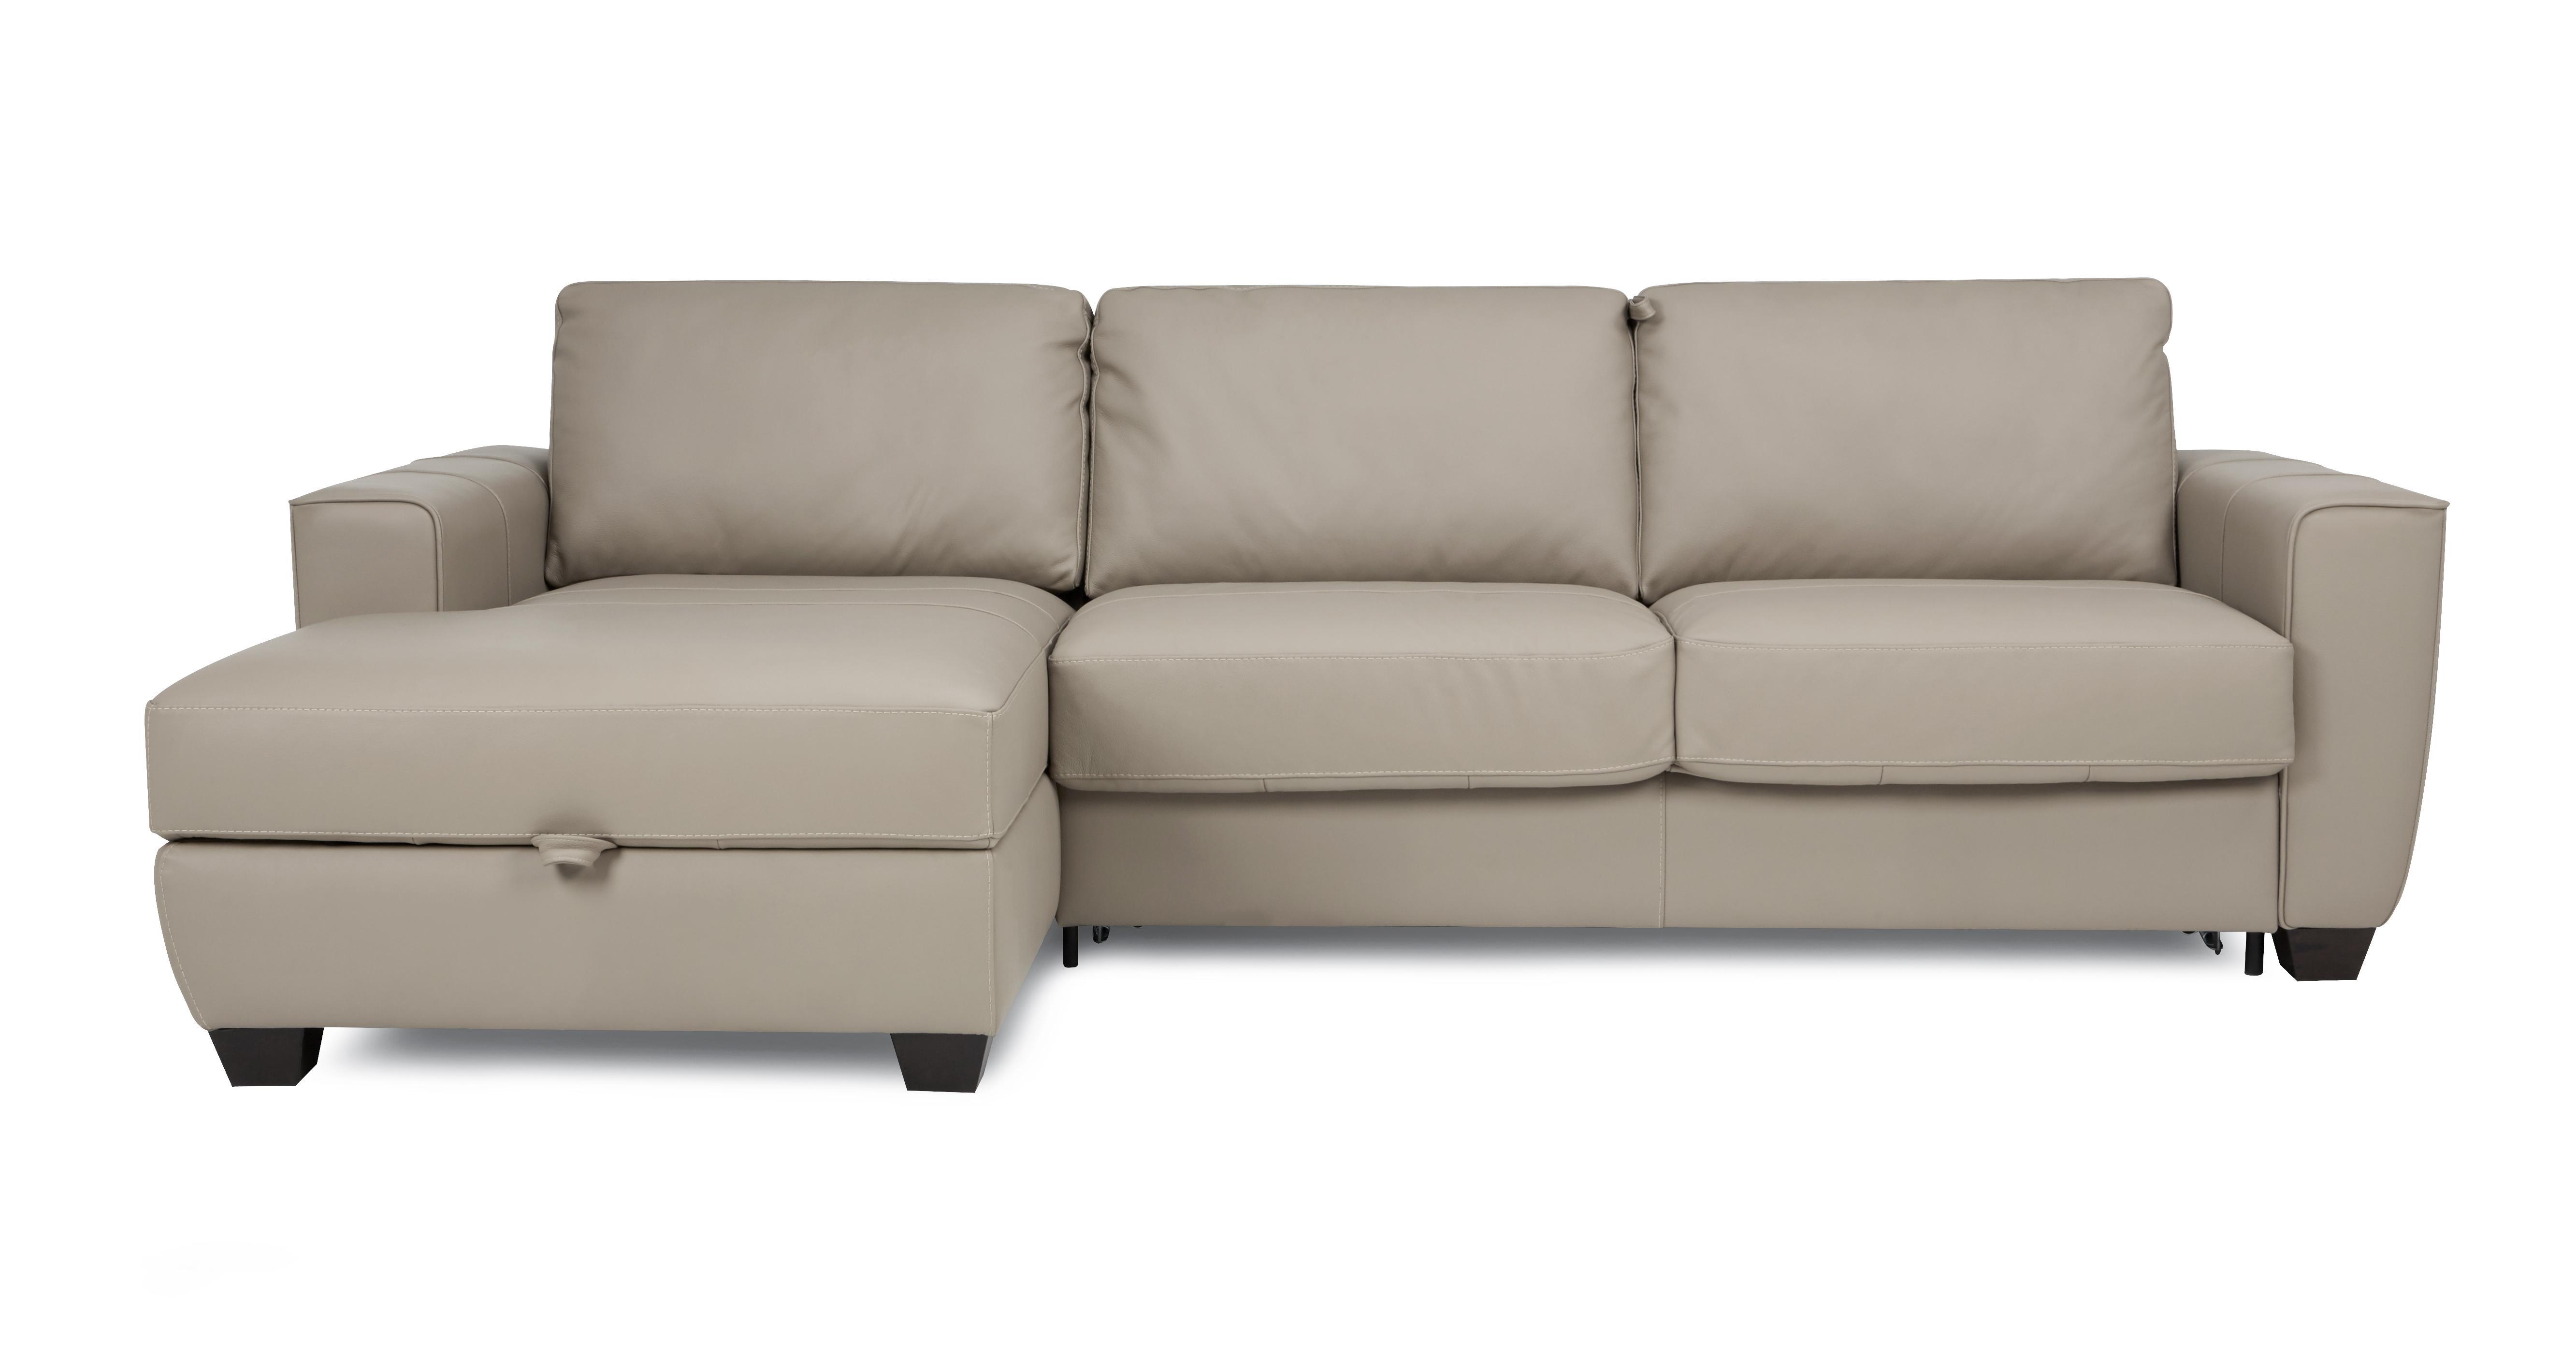 world futon futons dhp couch multiple convertible walmart sofa of emily colors ip com